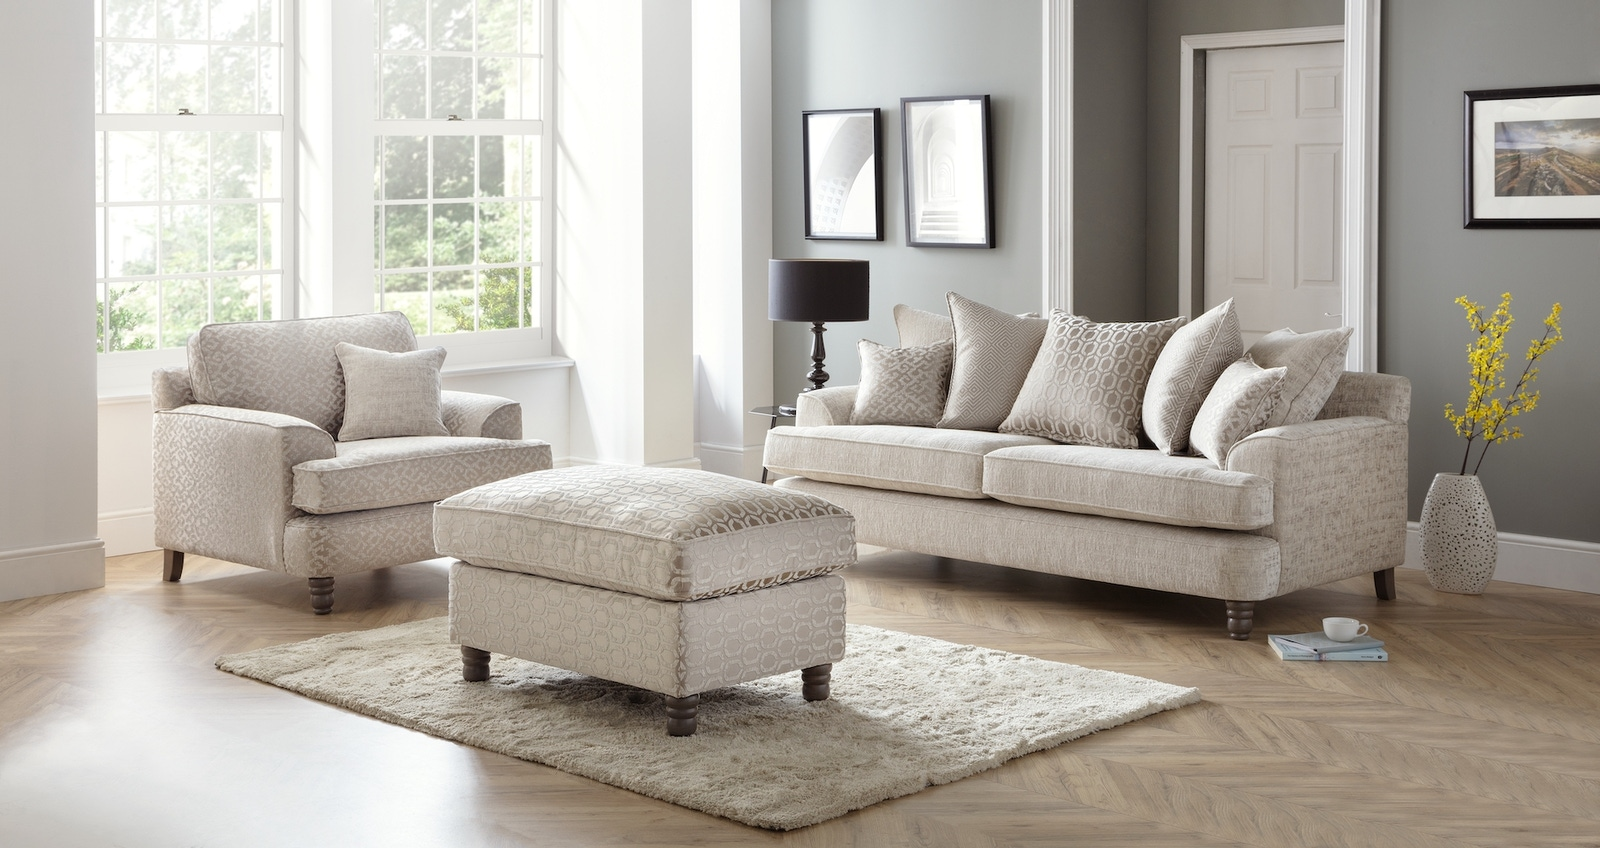 Murano Sofa and Chair set